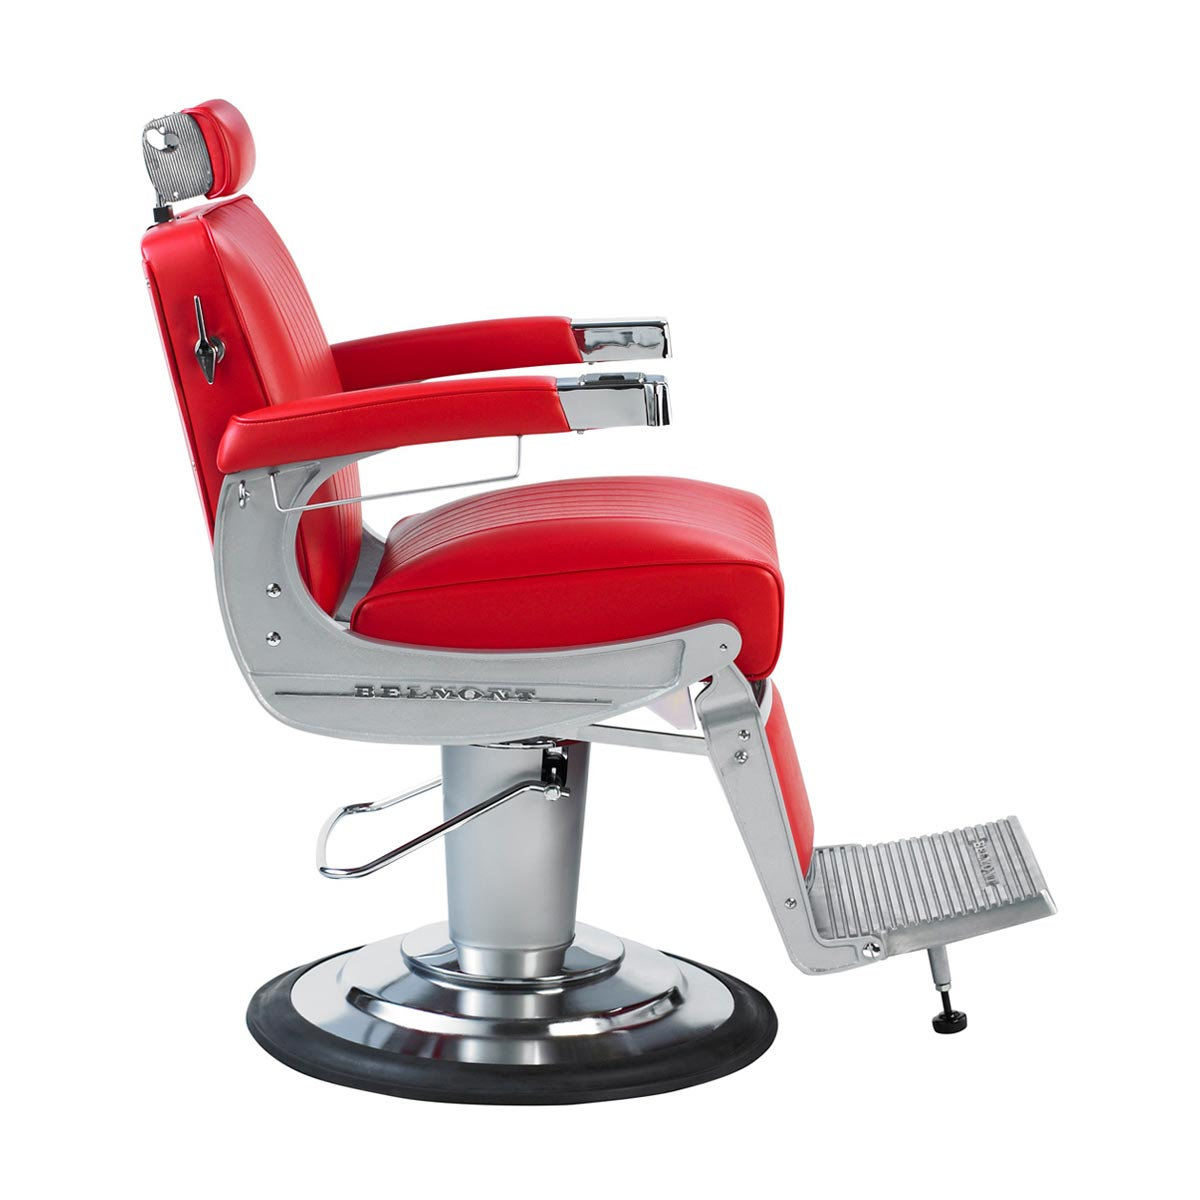 Takara Belmont Elegance Barber Chair with Recliner alternative product image 2